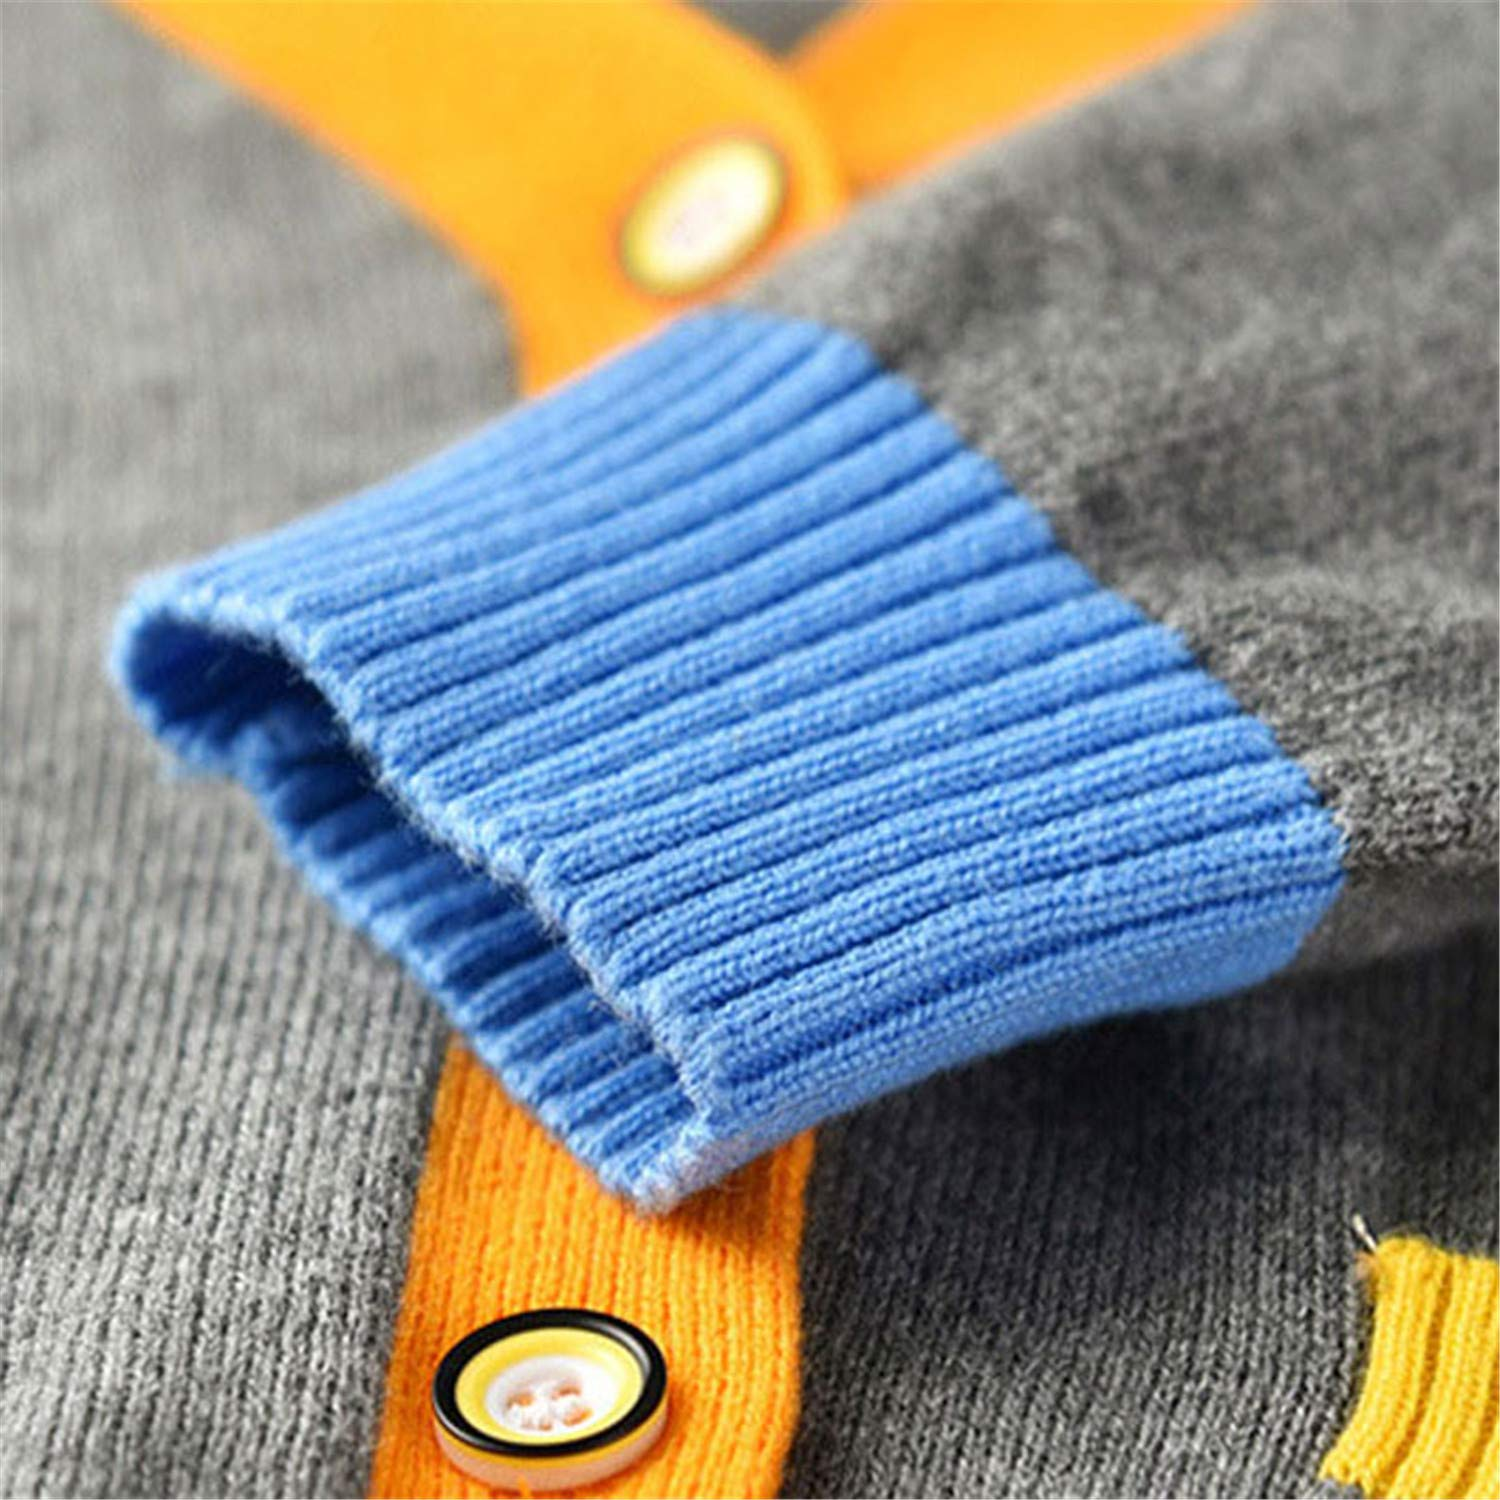 Paddy Meredith Casual Sweaters Vests Knitted Cardigans Autumn Winter Pullovers Waistcoat Boys Clothing